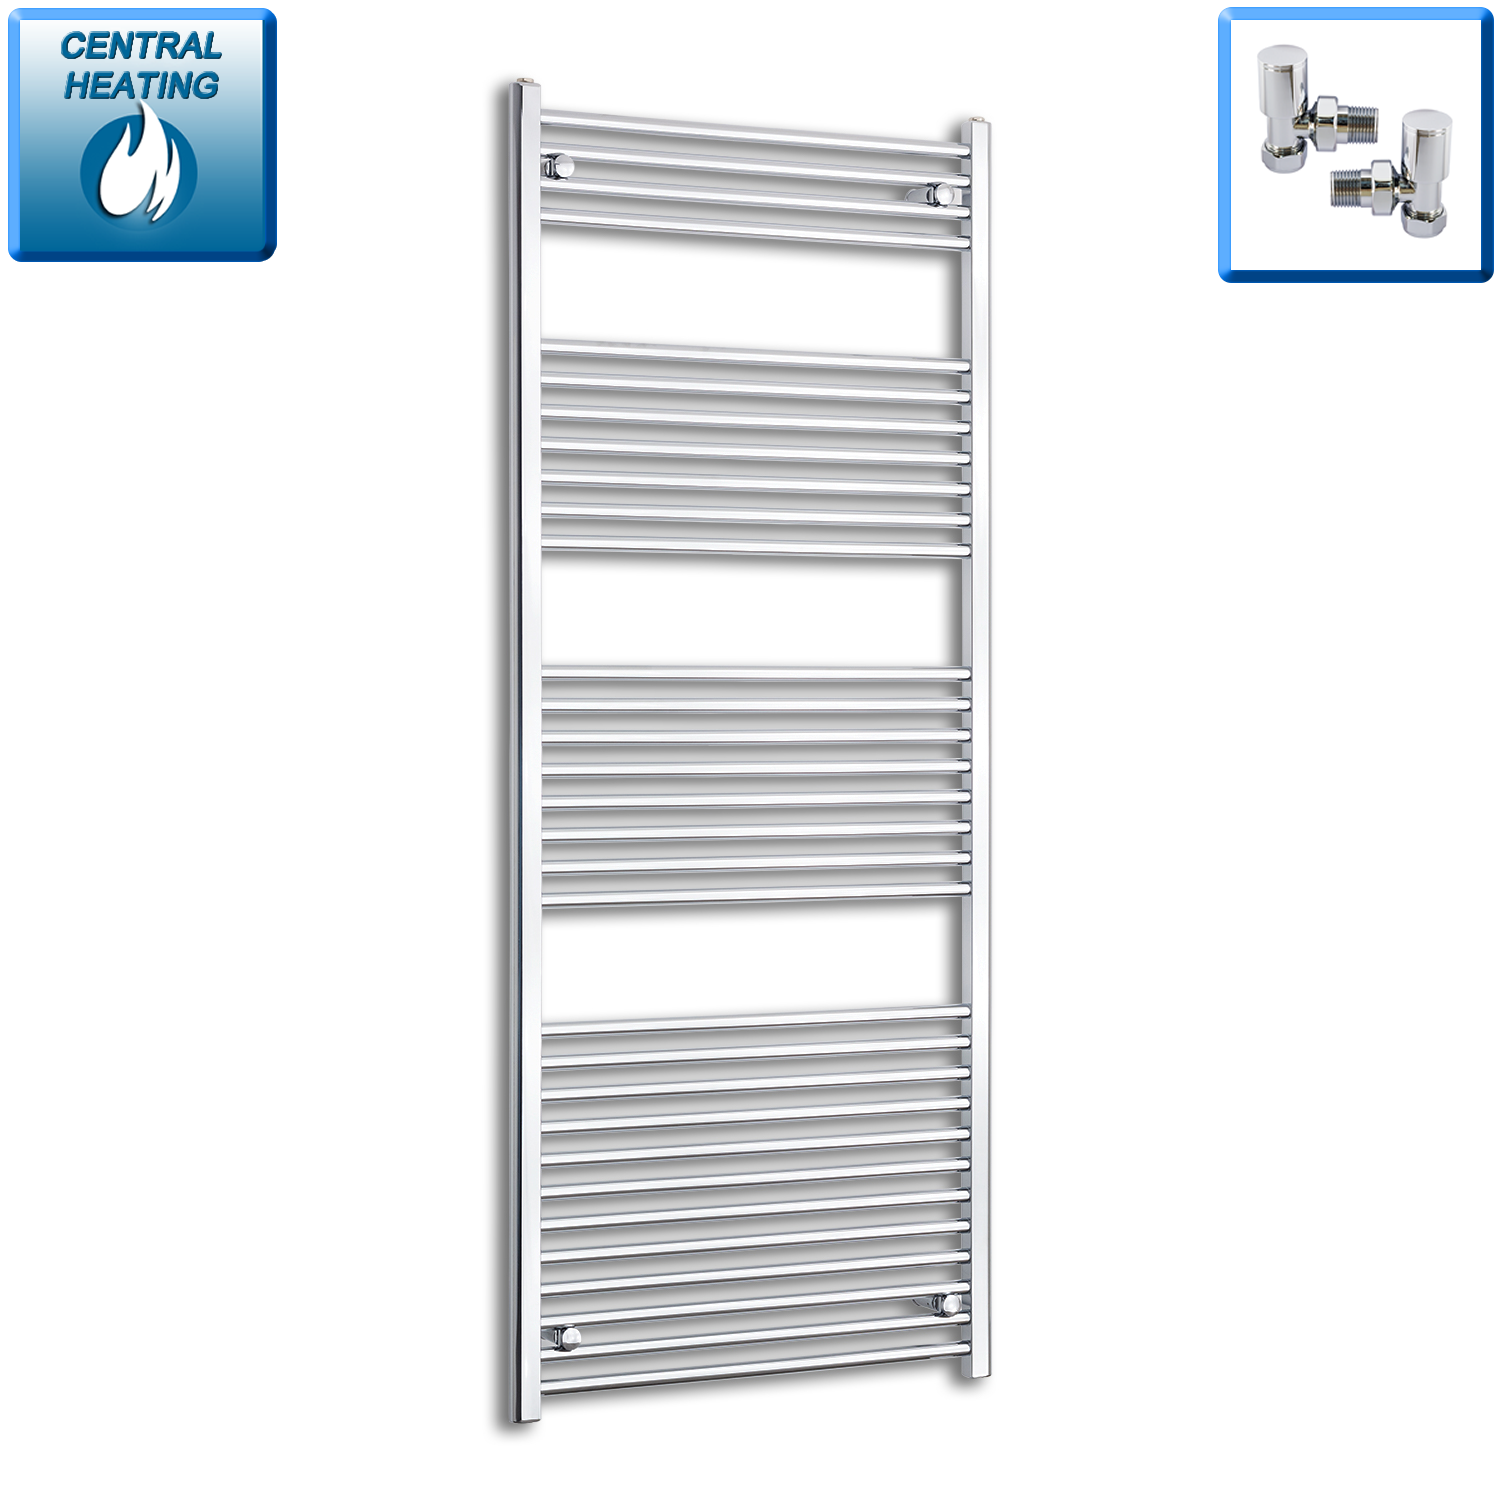 750mm Wide 1800mm High Flat Chrome Heated Towel Rail Radiator HTR,With Angled Valve